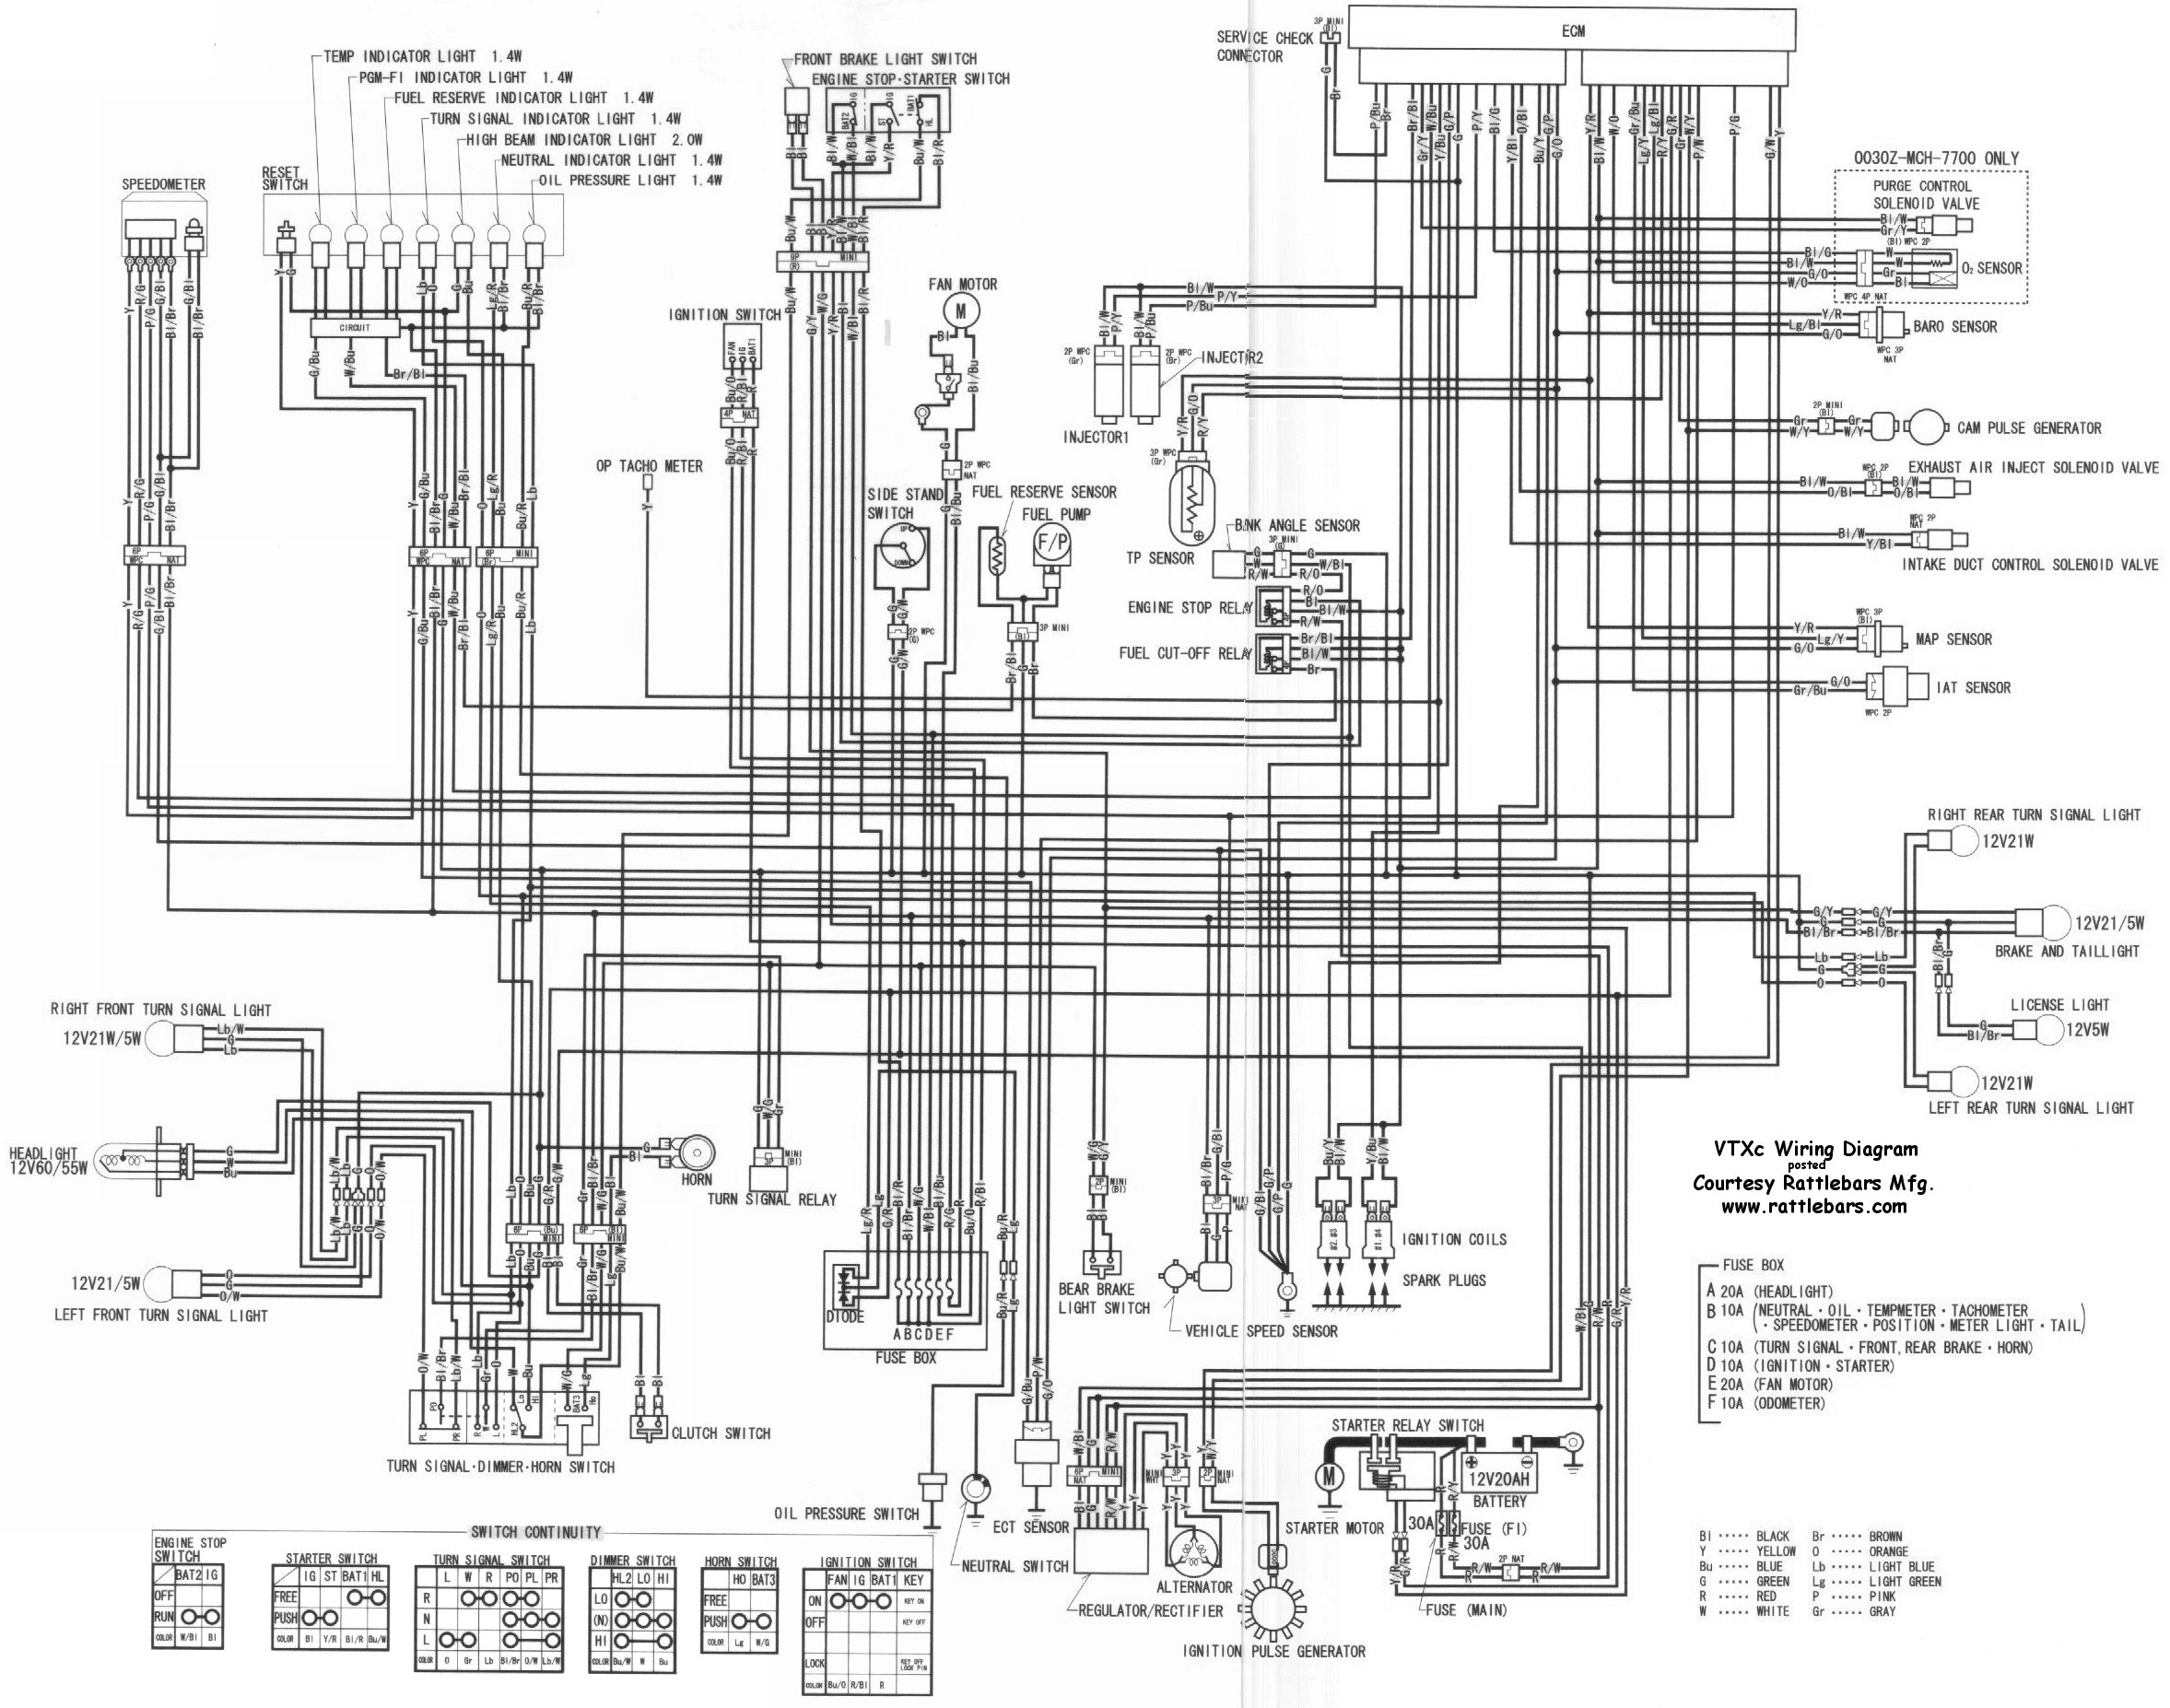 Index Of Wiringdiagrams Cleterminal